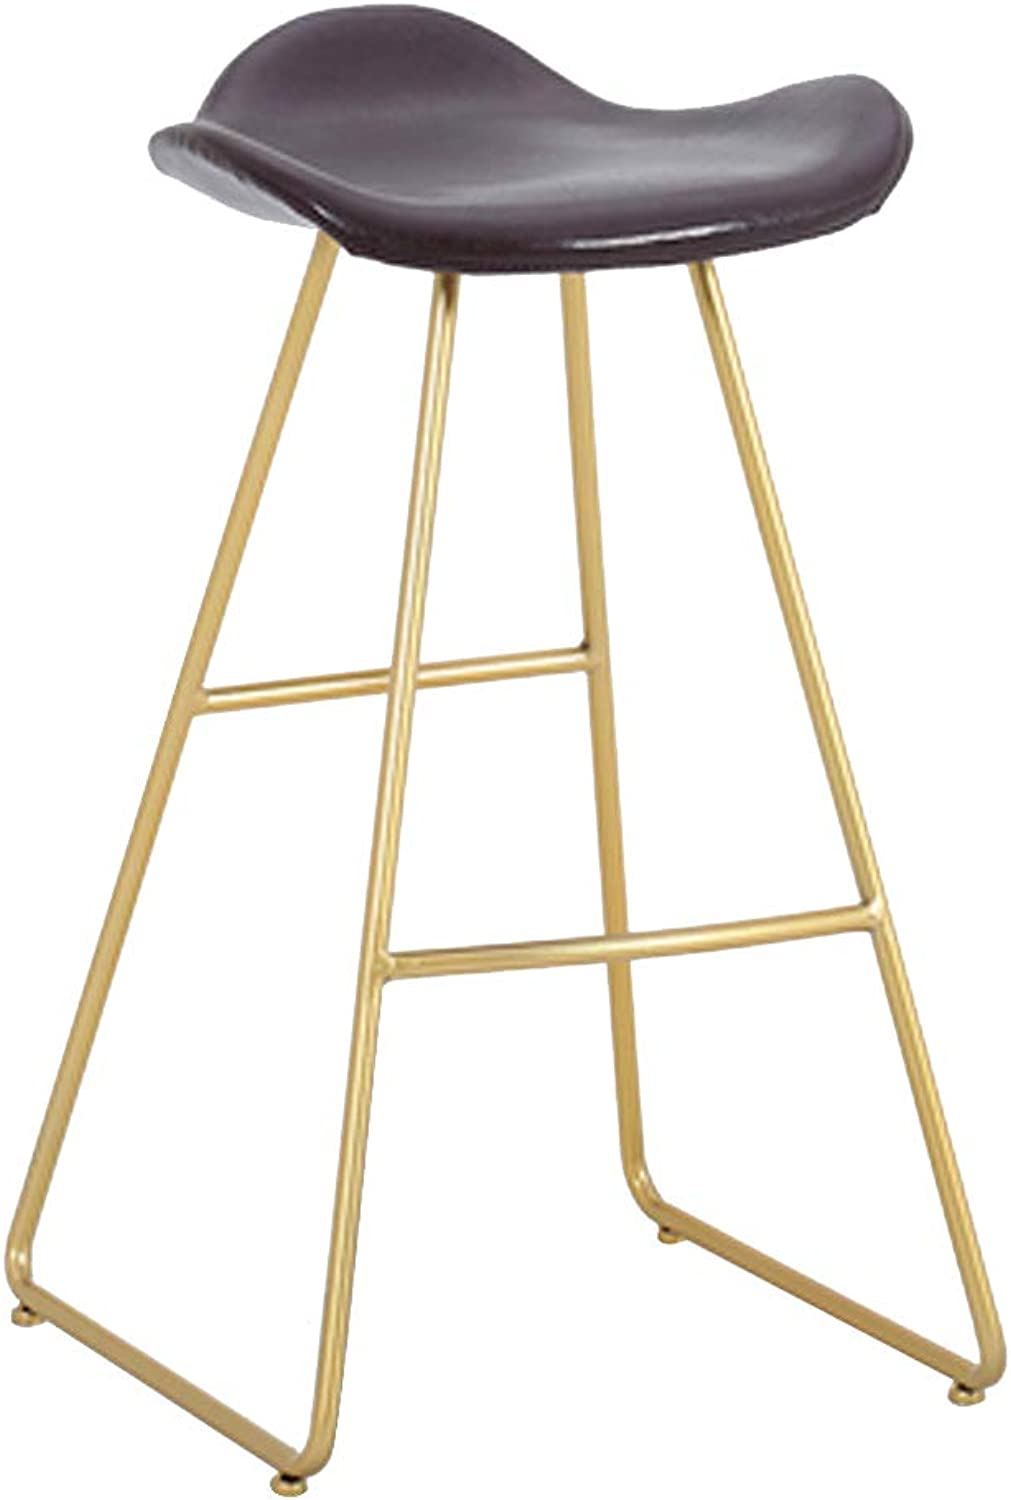 Metal Counter Stool Bar Hight Stools with Footrest and Back Modern Barstool Chairs for Kitchen Bistro Pub Cafe Coffee Faux Leather Seat gold Metal Legs, Brown